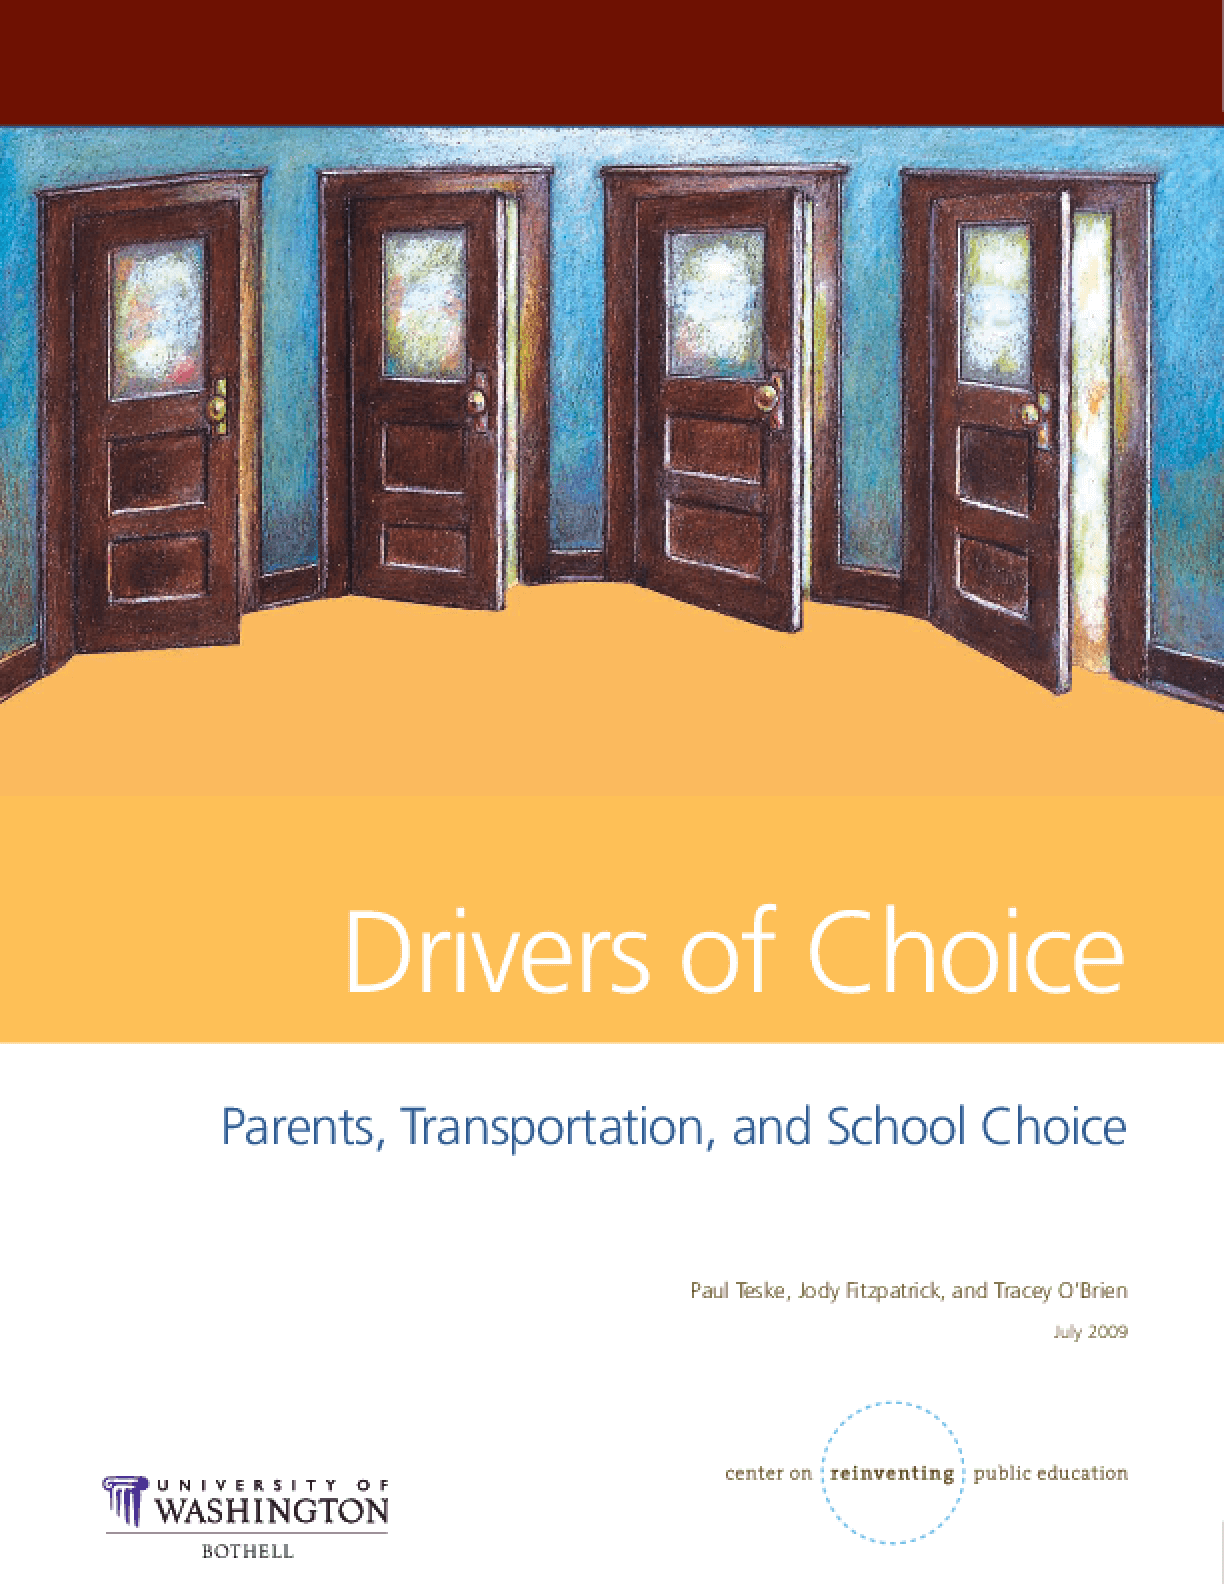 Drivers of Choice: Parents, Transportation, and School Choice